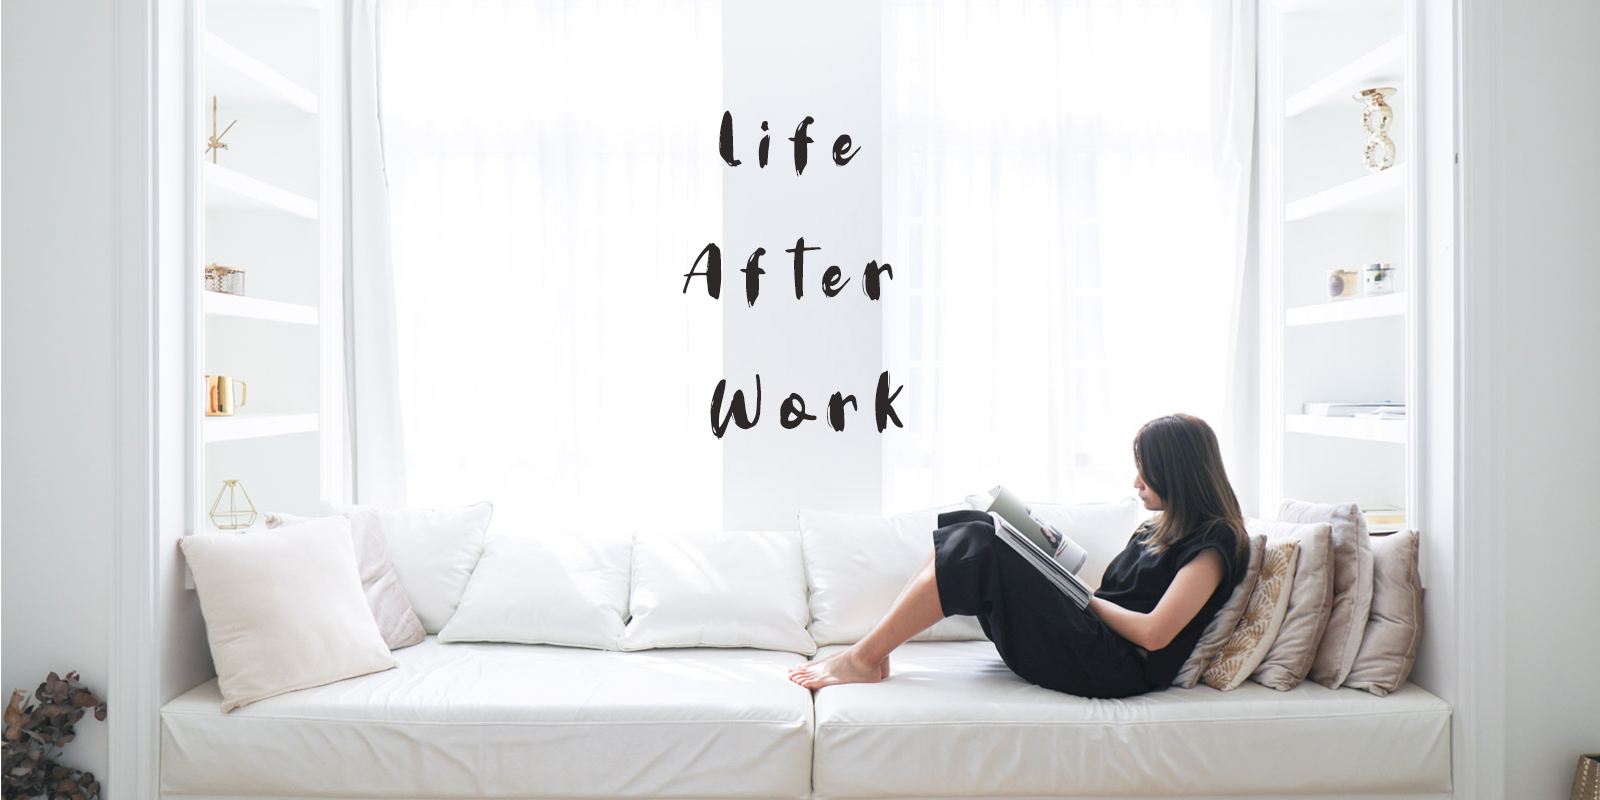 Life after work